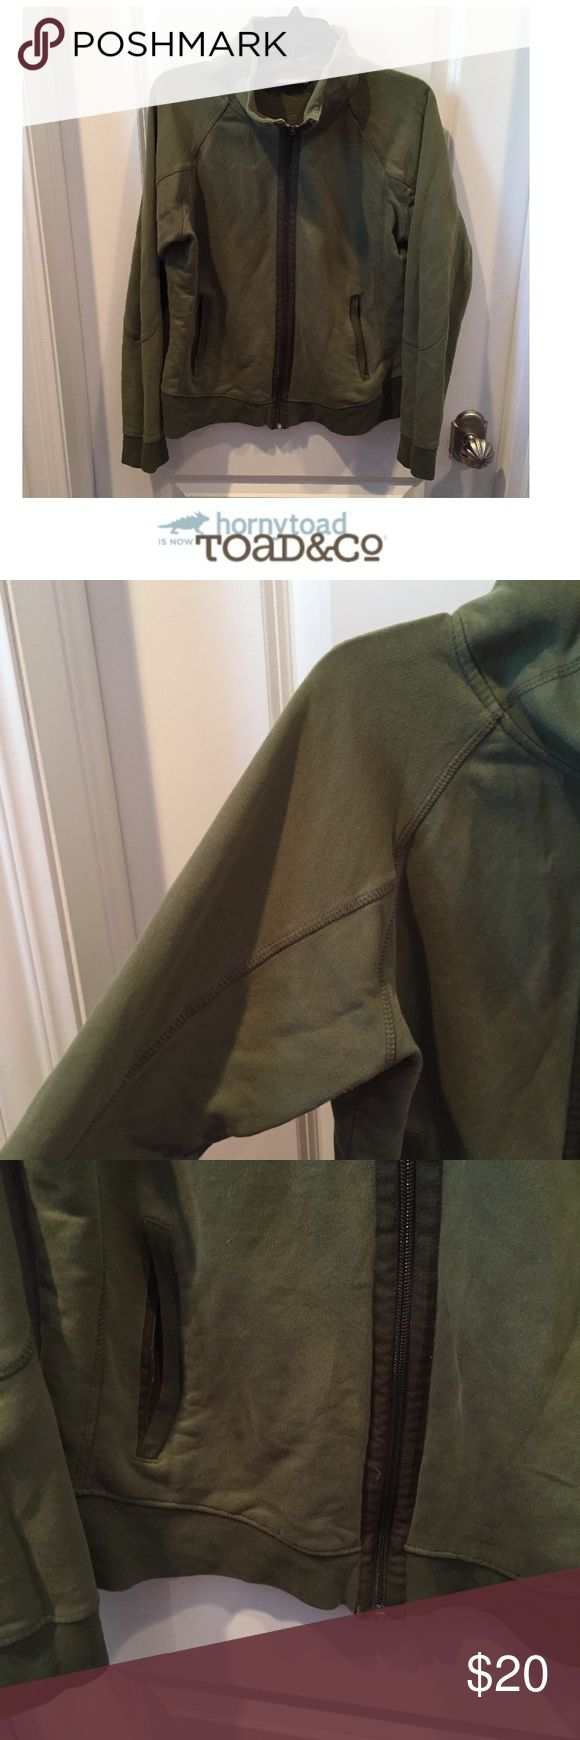 """Horny Toad Organic Cotton Green Zip Up Sweatshirt Horny Toad Organic Cotton Green Zip Up Sweatshirt. 20"""" bust. 23"""" long. Gently worn. Good condition. Color is a distressed green by design. Front Zip pockets. Feel free to make an offer or bundle & save! Horny Toad Tops Sweatshirts & Hoodies"""